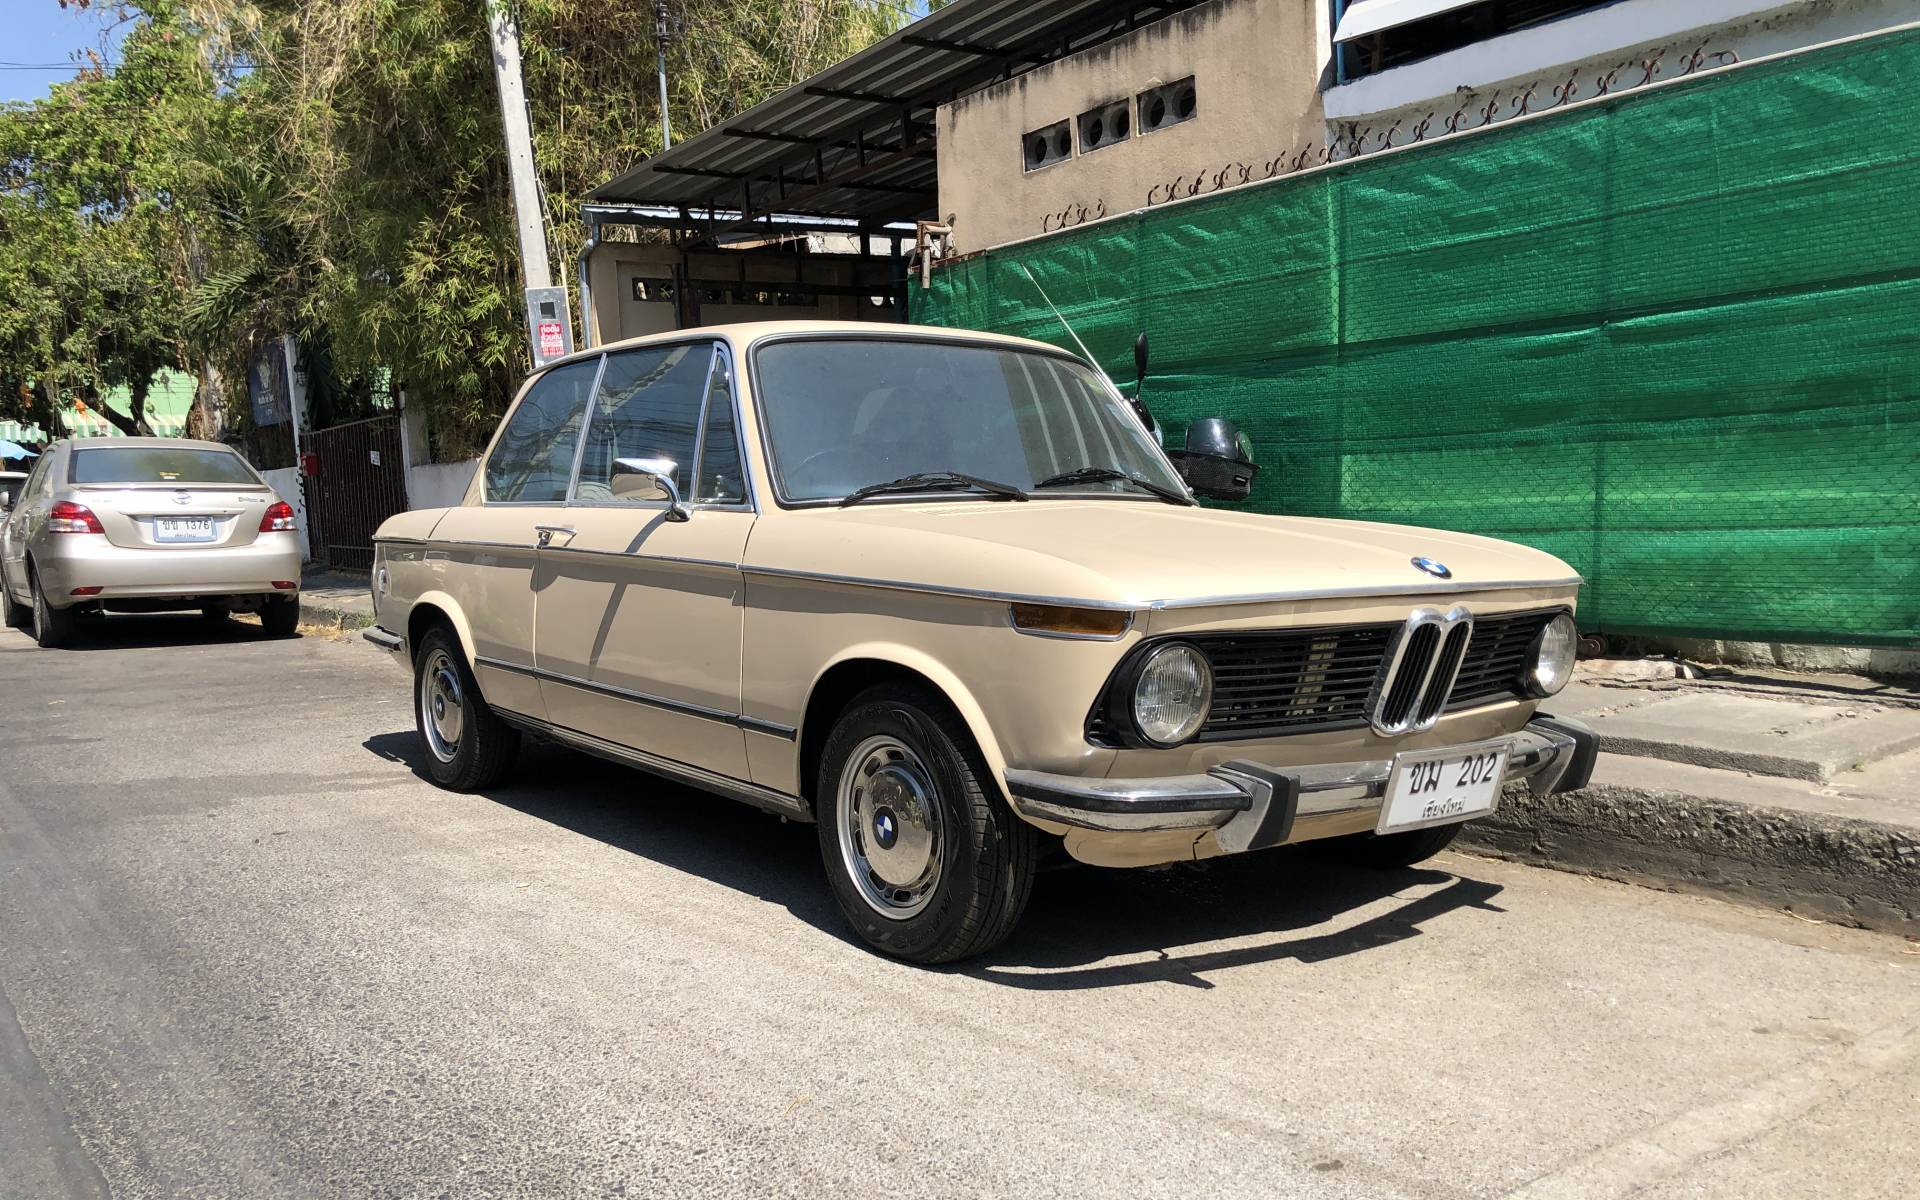 <p><strong>BMW 2002</strong></p>